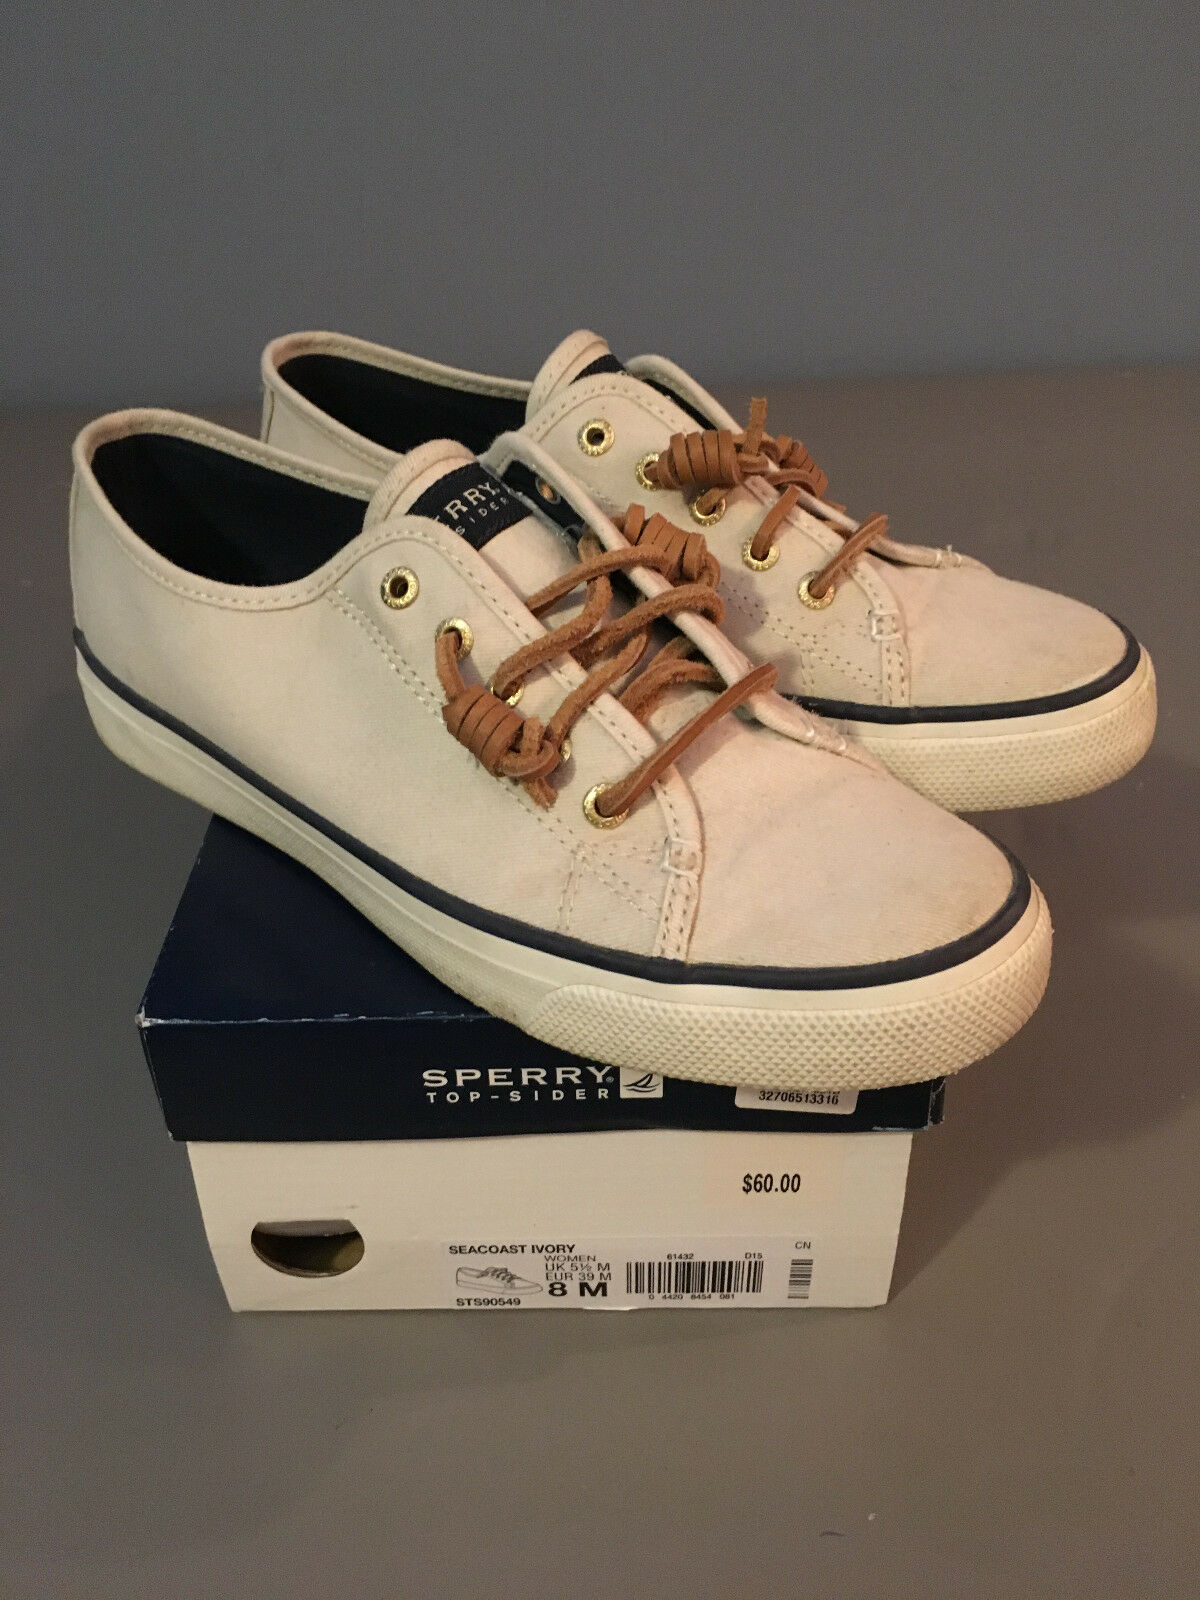 In Box Genuine Women Sperry Seacost Ivory Boat Shoes #STS90549 8M